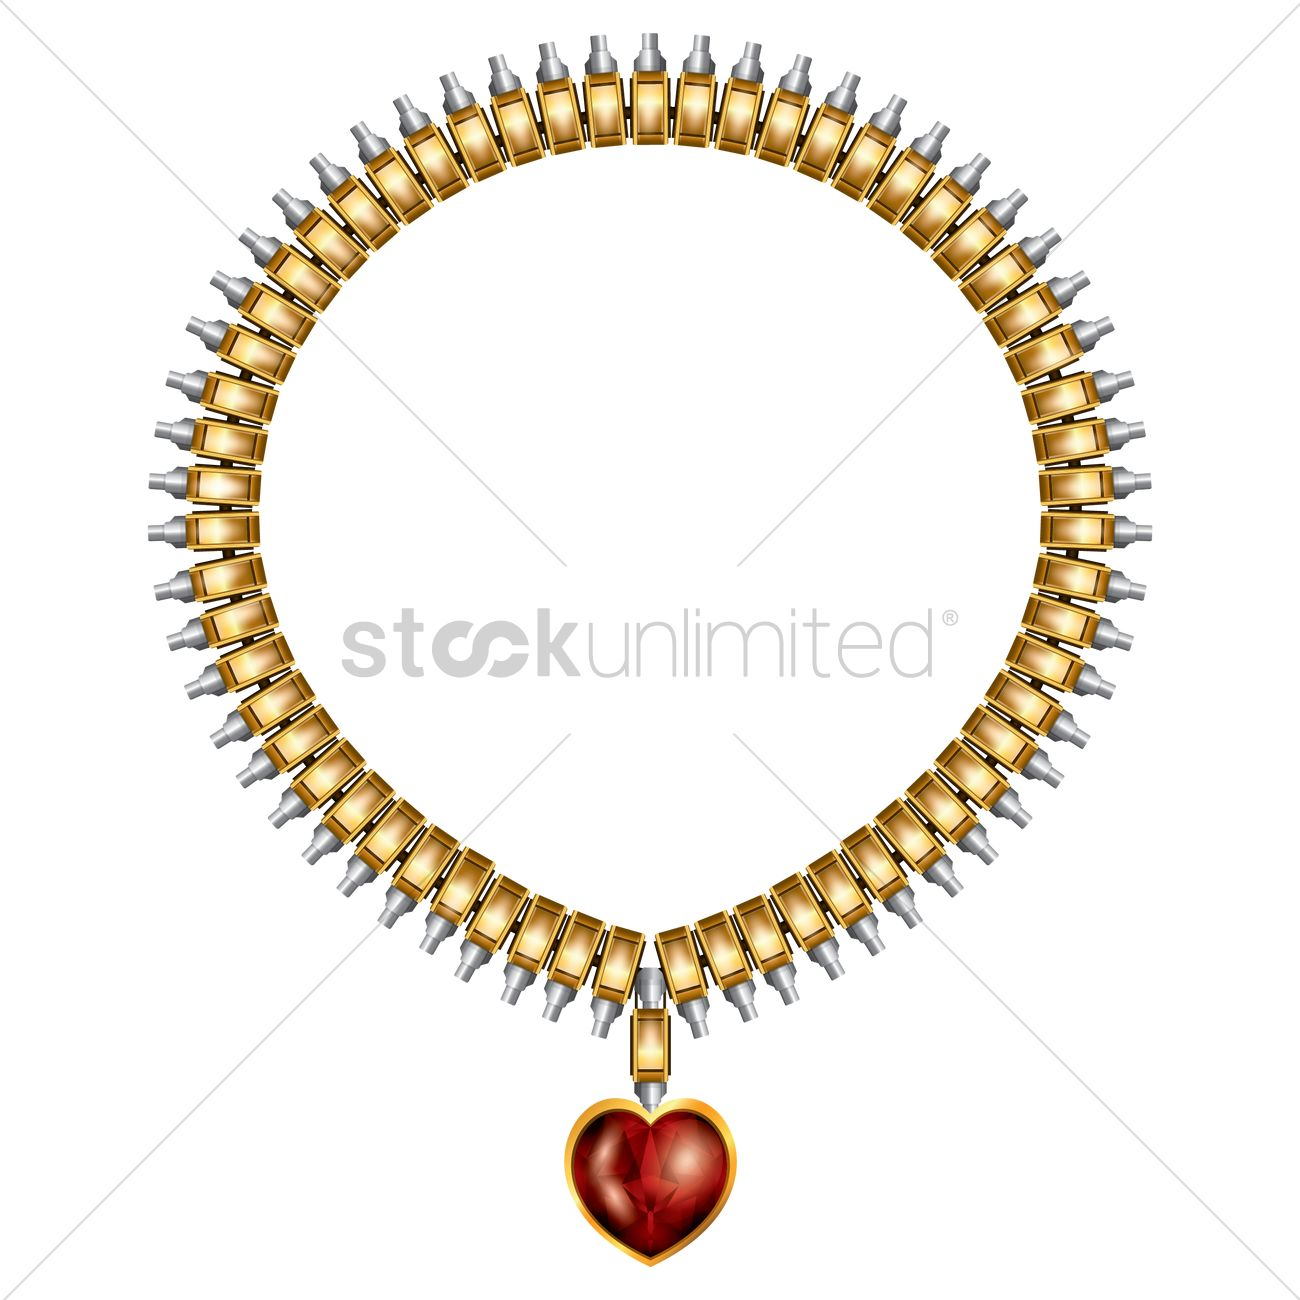 Necklace with pendant Vector Image - 1808846 | StockUnlimited